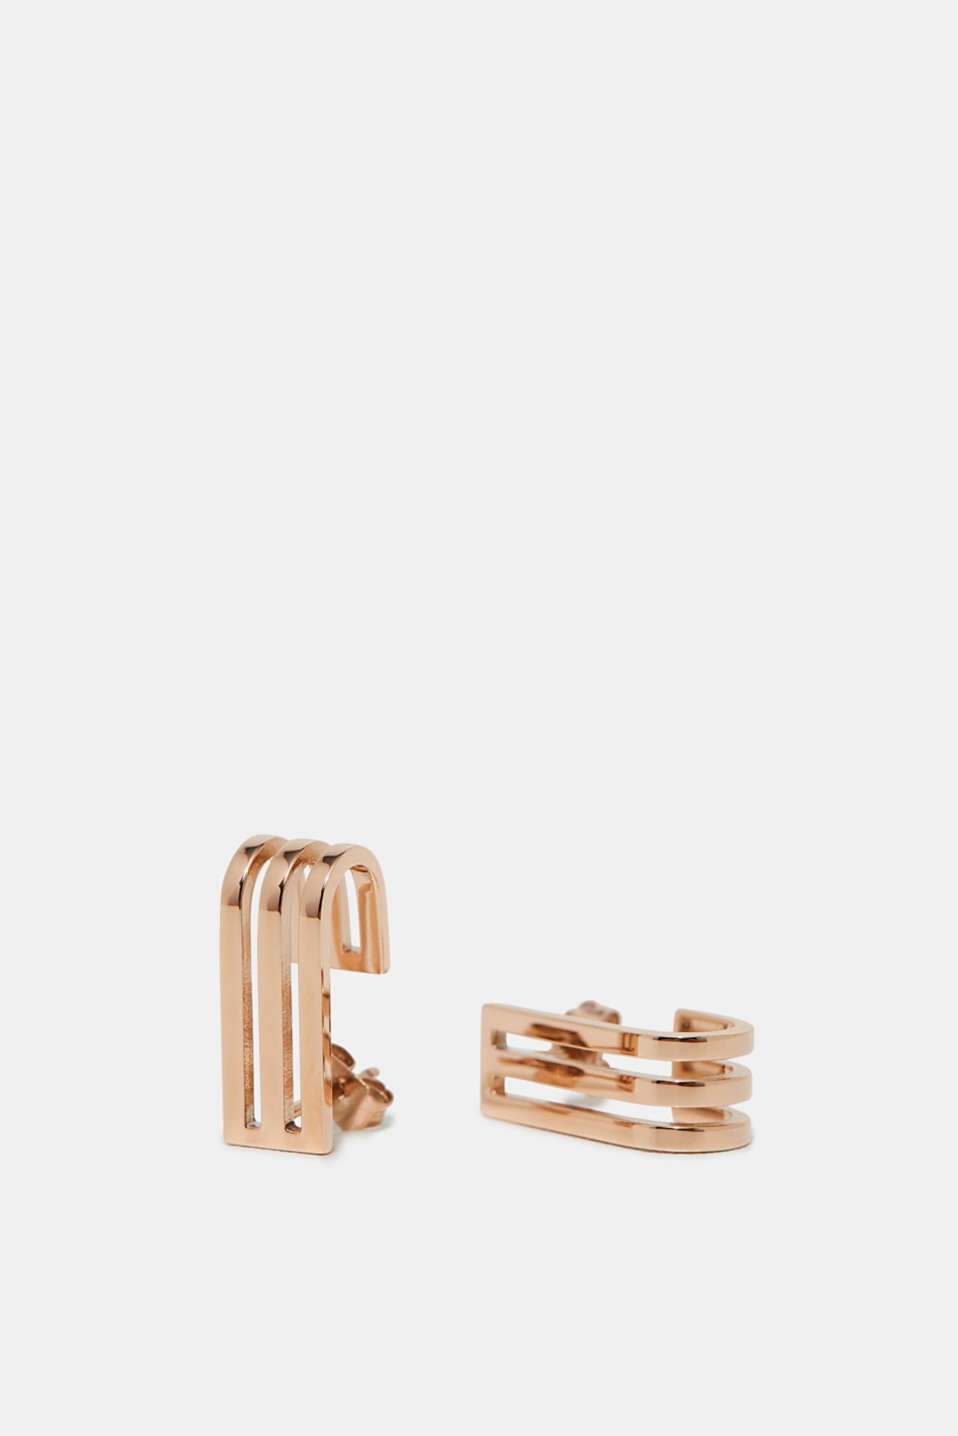 Esprit - Rose gold coloured stud earrings